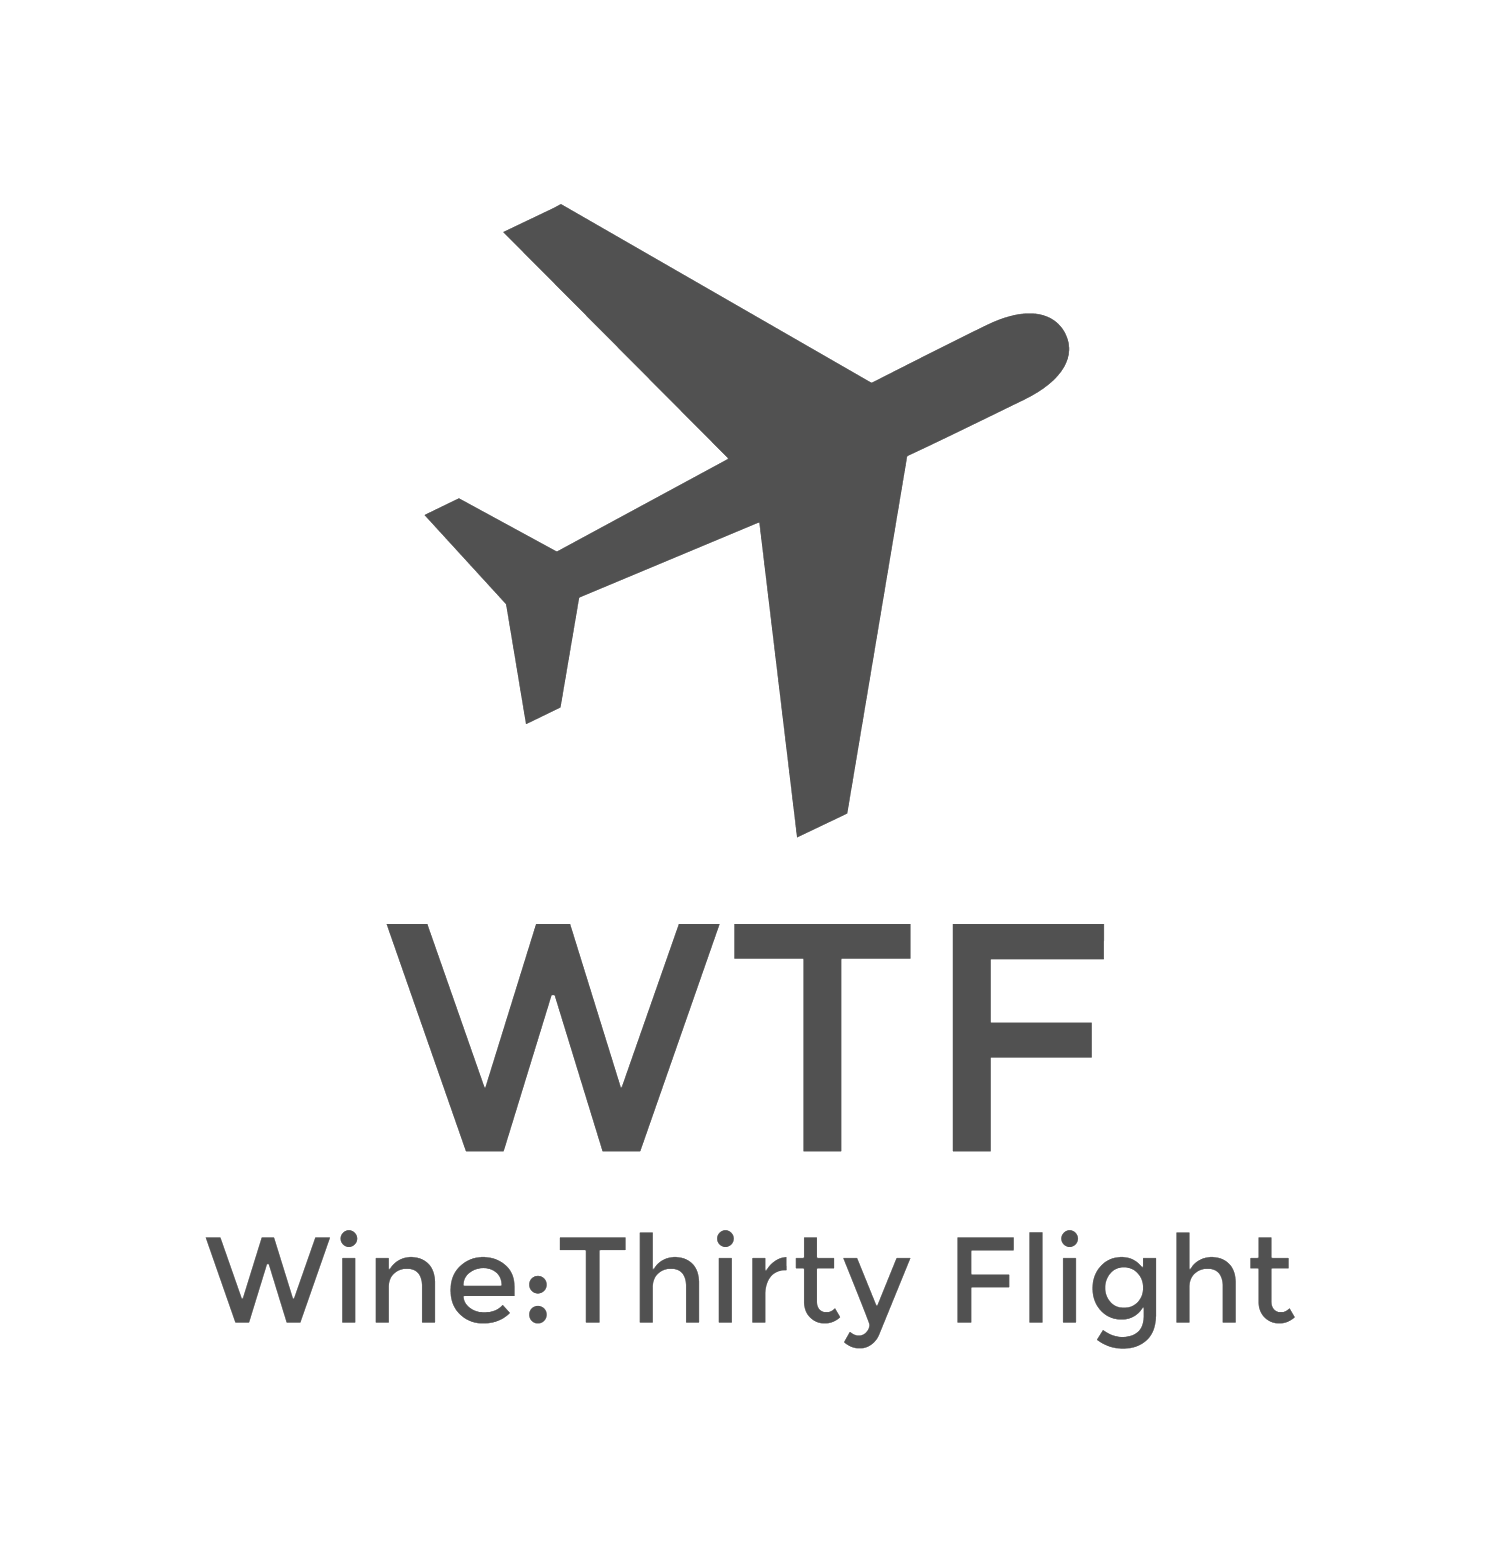 Wine:Thirty Flight